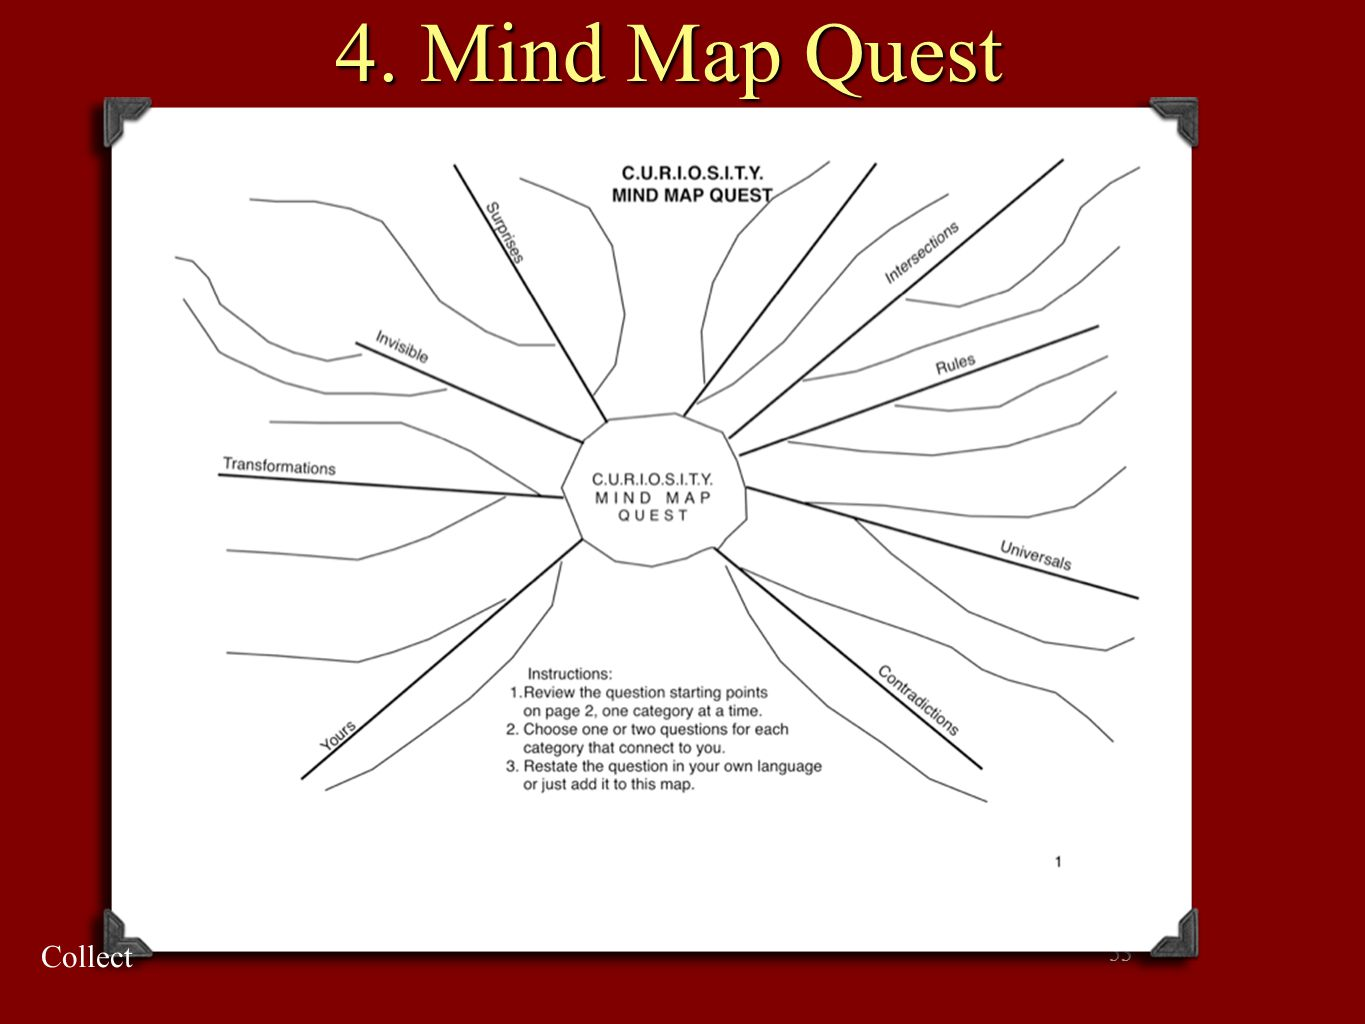 4. Mind Map Quest